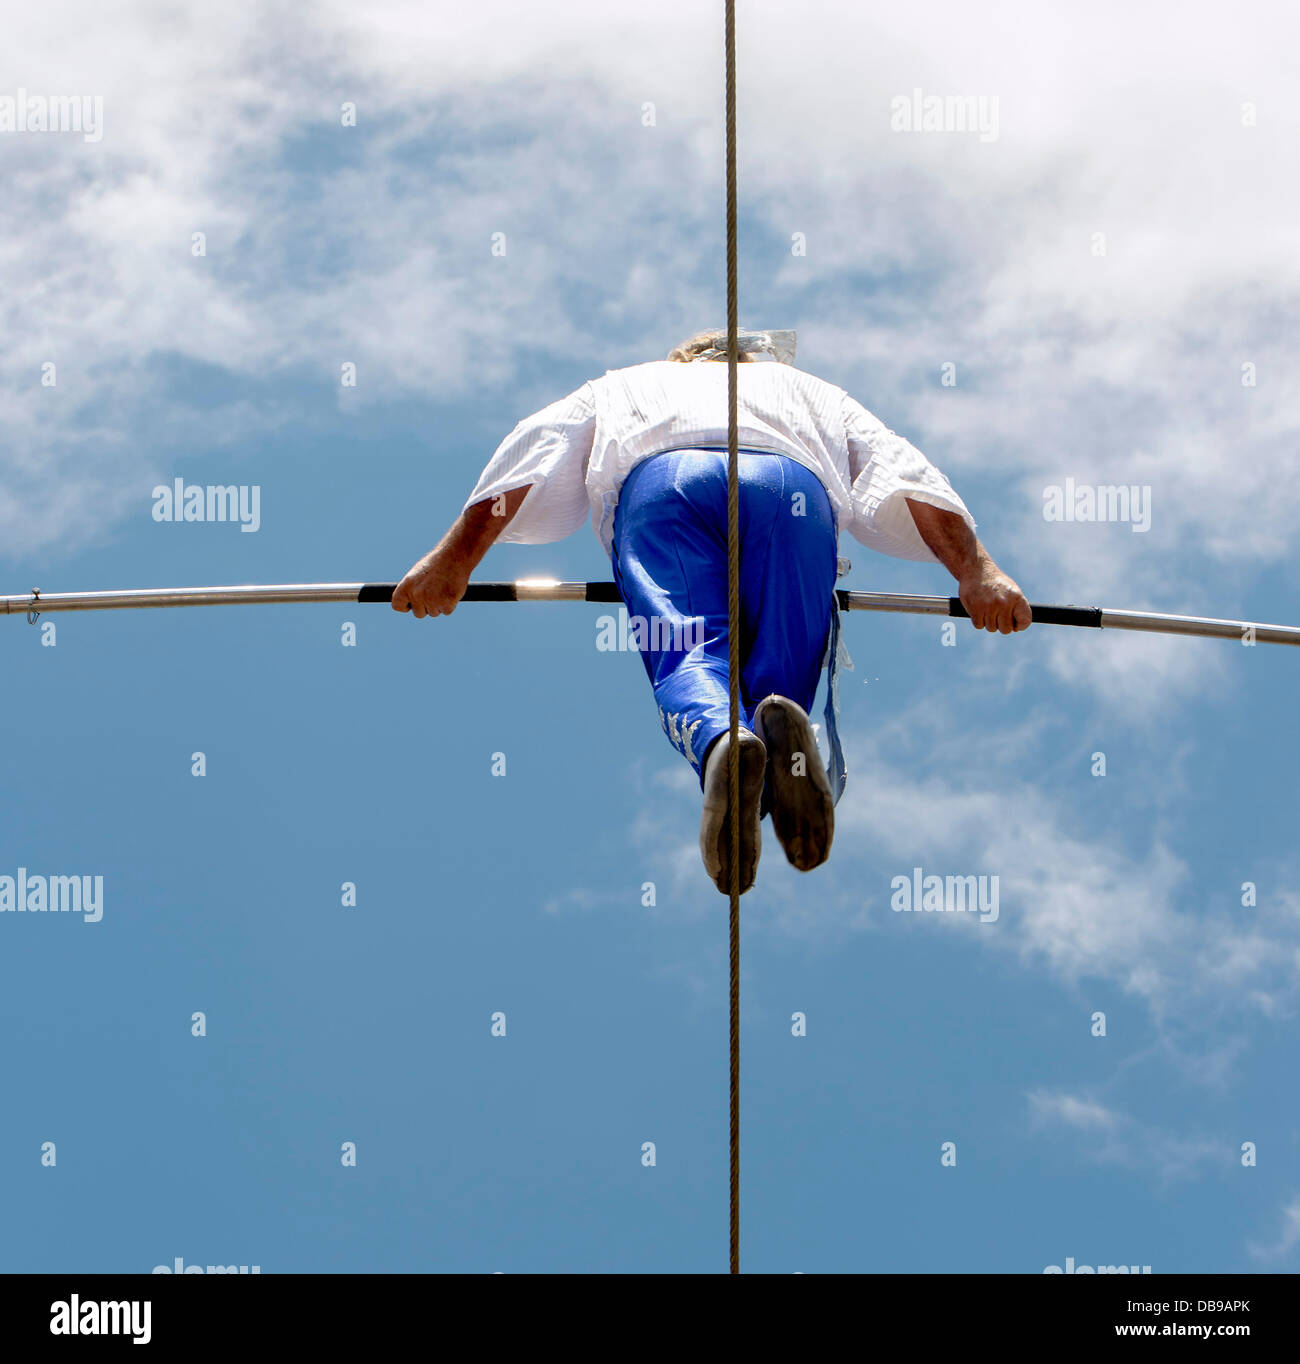 Butte, Montana, USA. 25th July, 2013. RICK WALLENDA takes a 700-foot, high wire walk up Main Street during the 12th - Stock Image